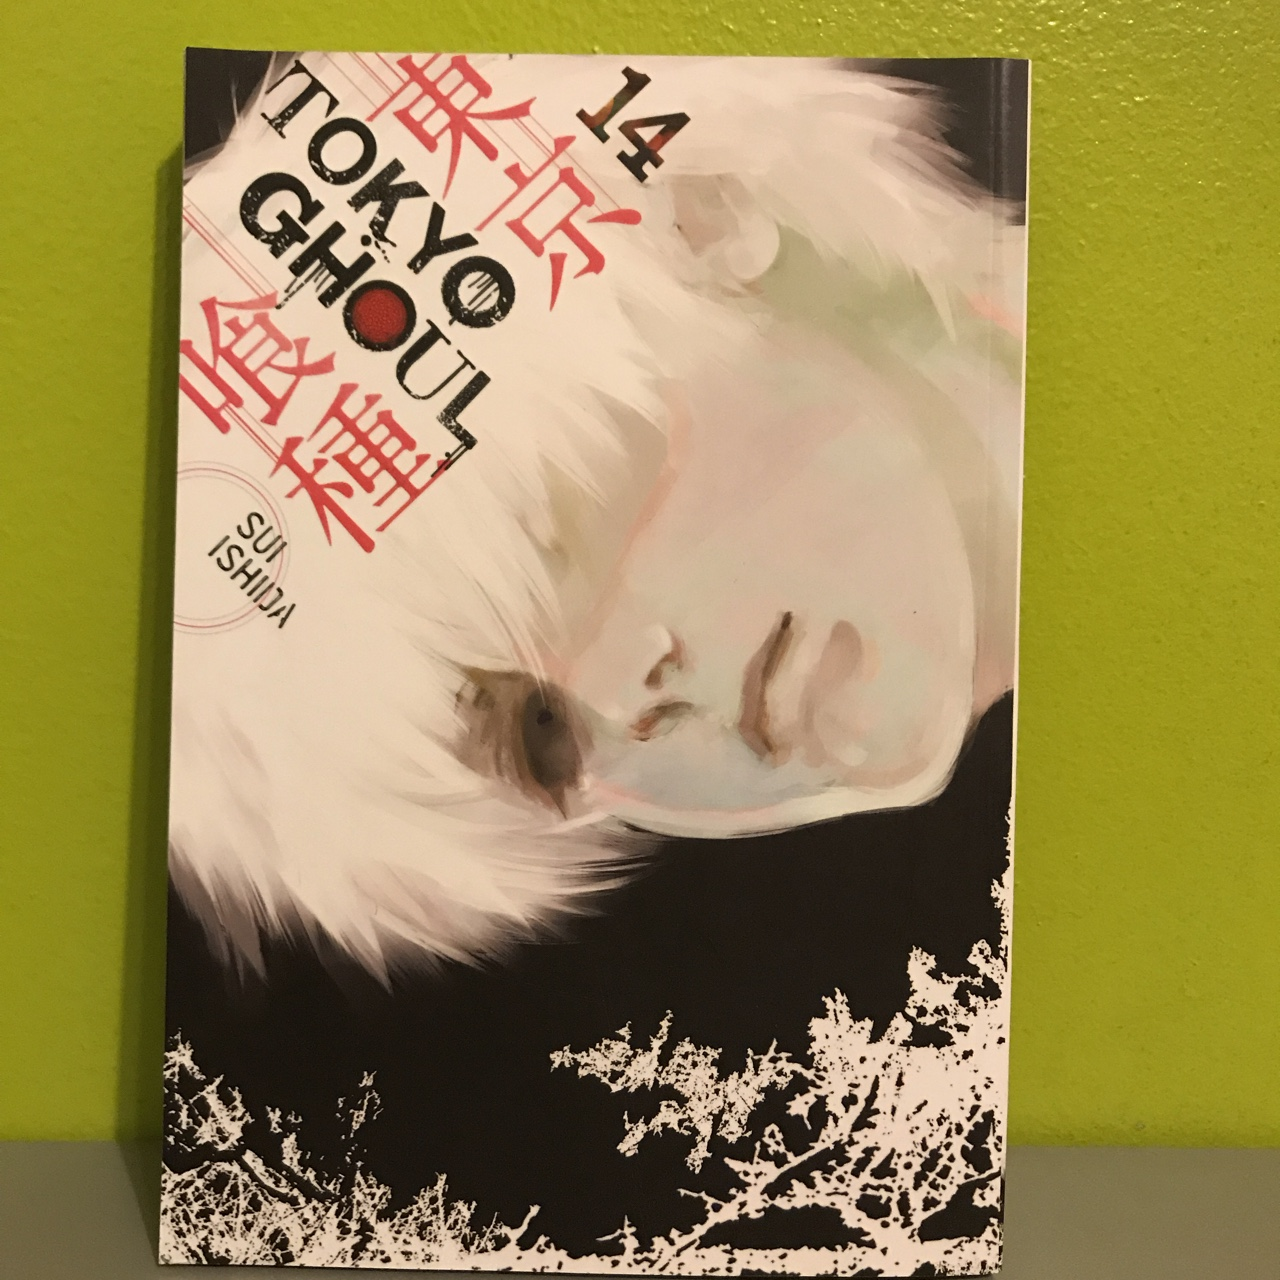 Tokyo Ghoul Vol  1 Can combine w my other manga post for